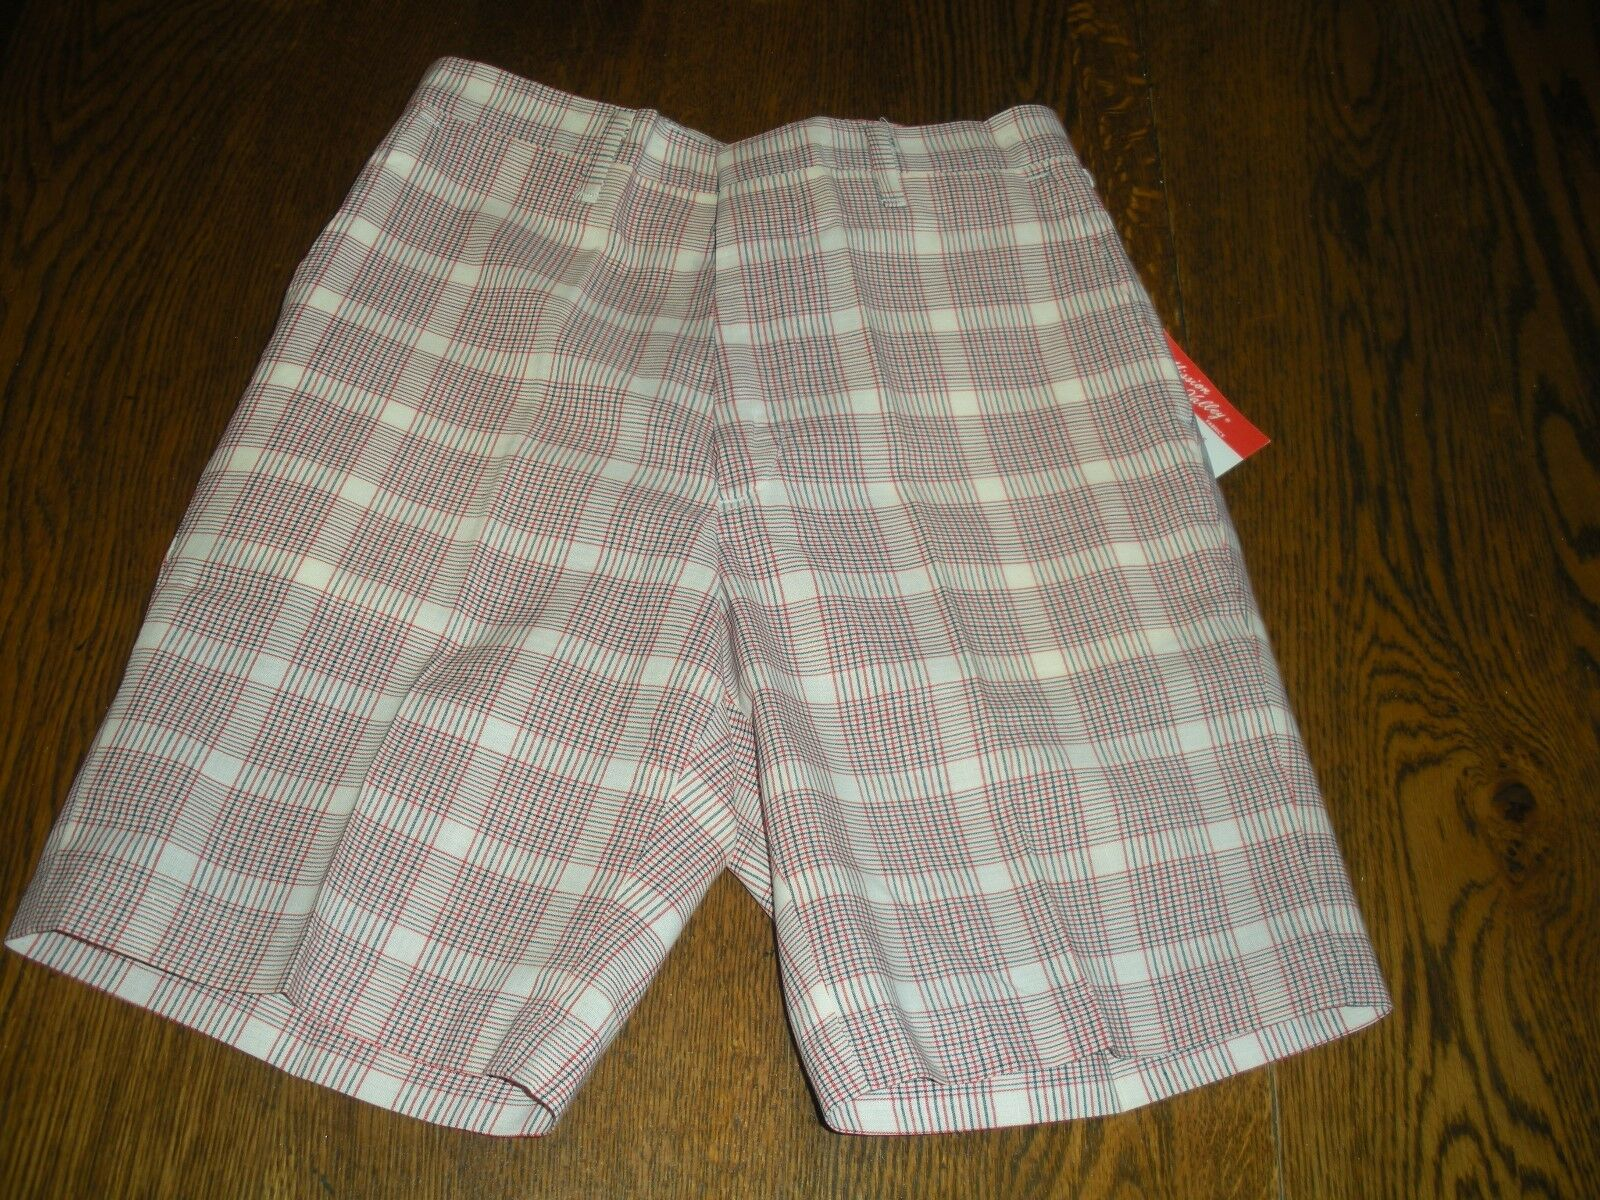 vintage boy's plaid shorts hipster 26 waist permanent press New old stock 60's